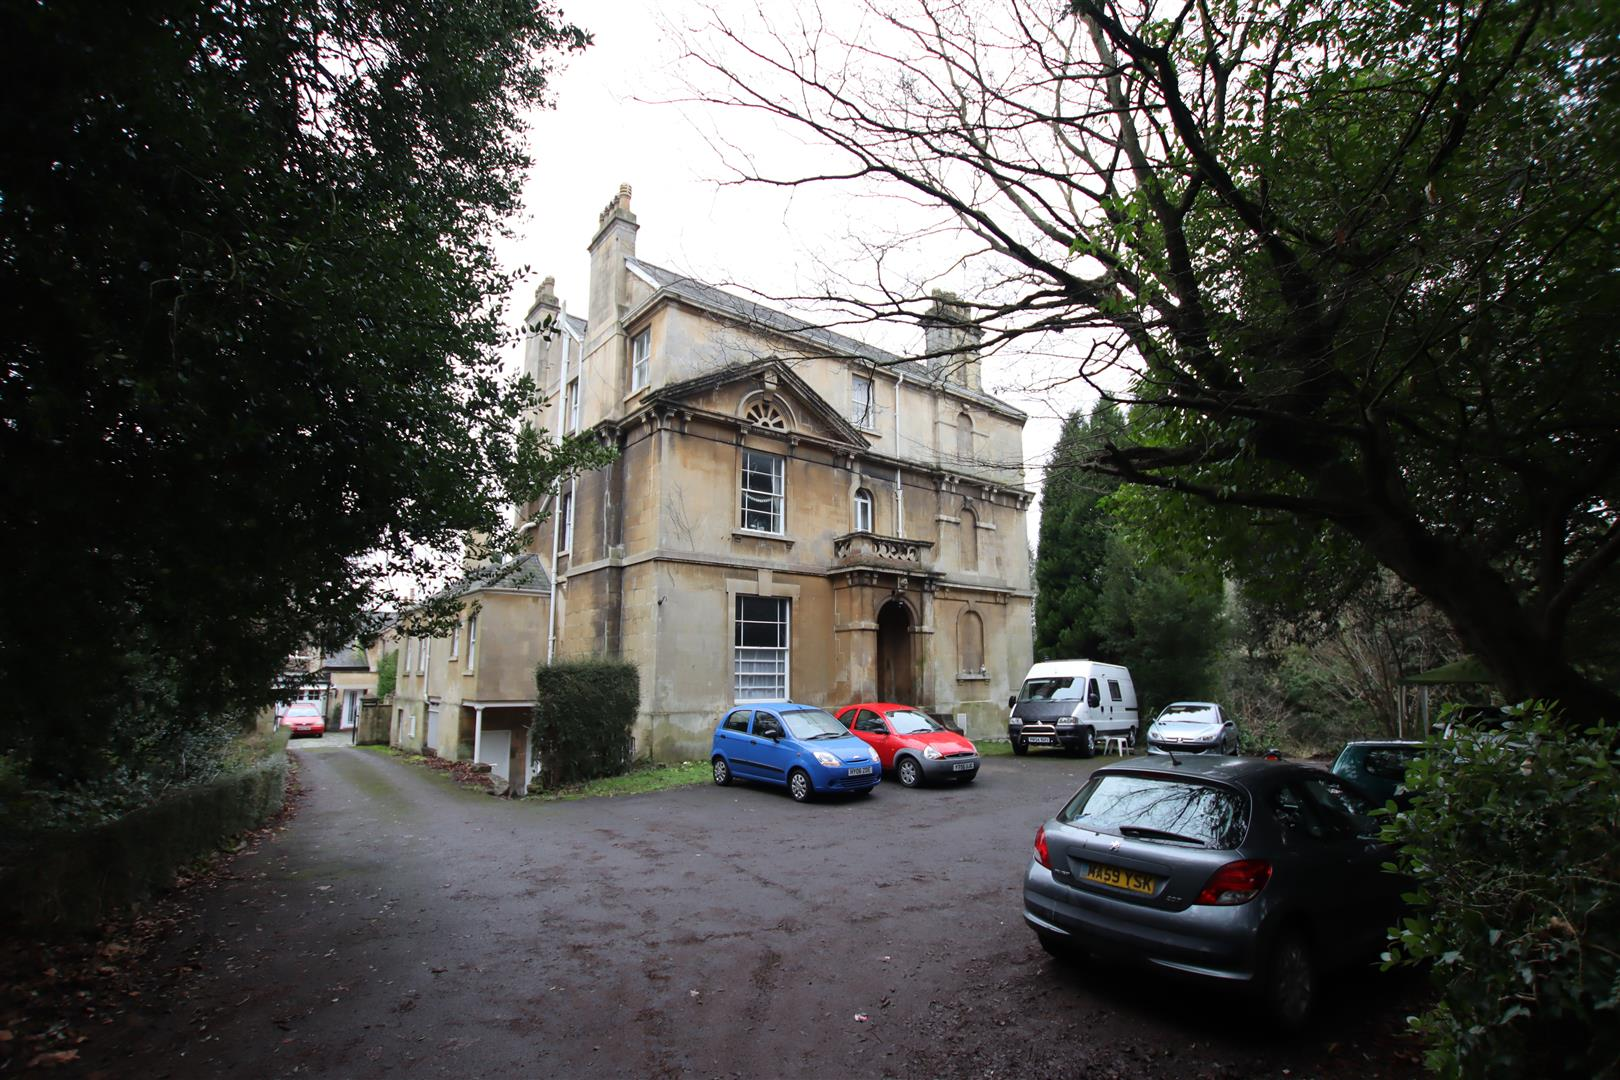 Weston Park East, Bath